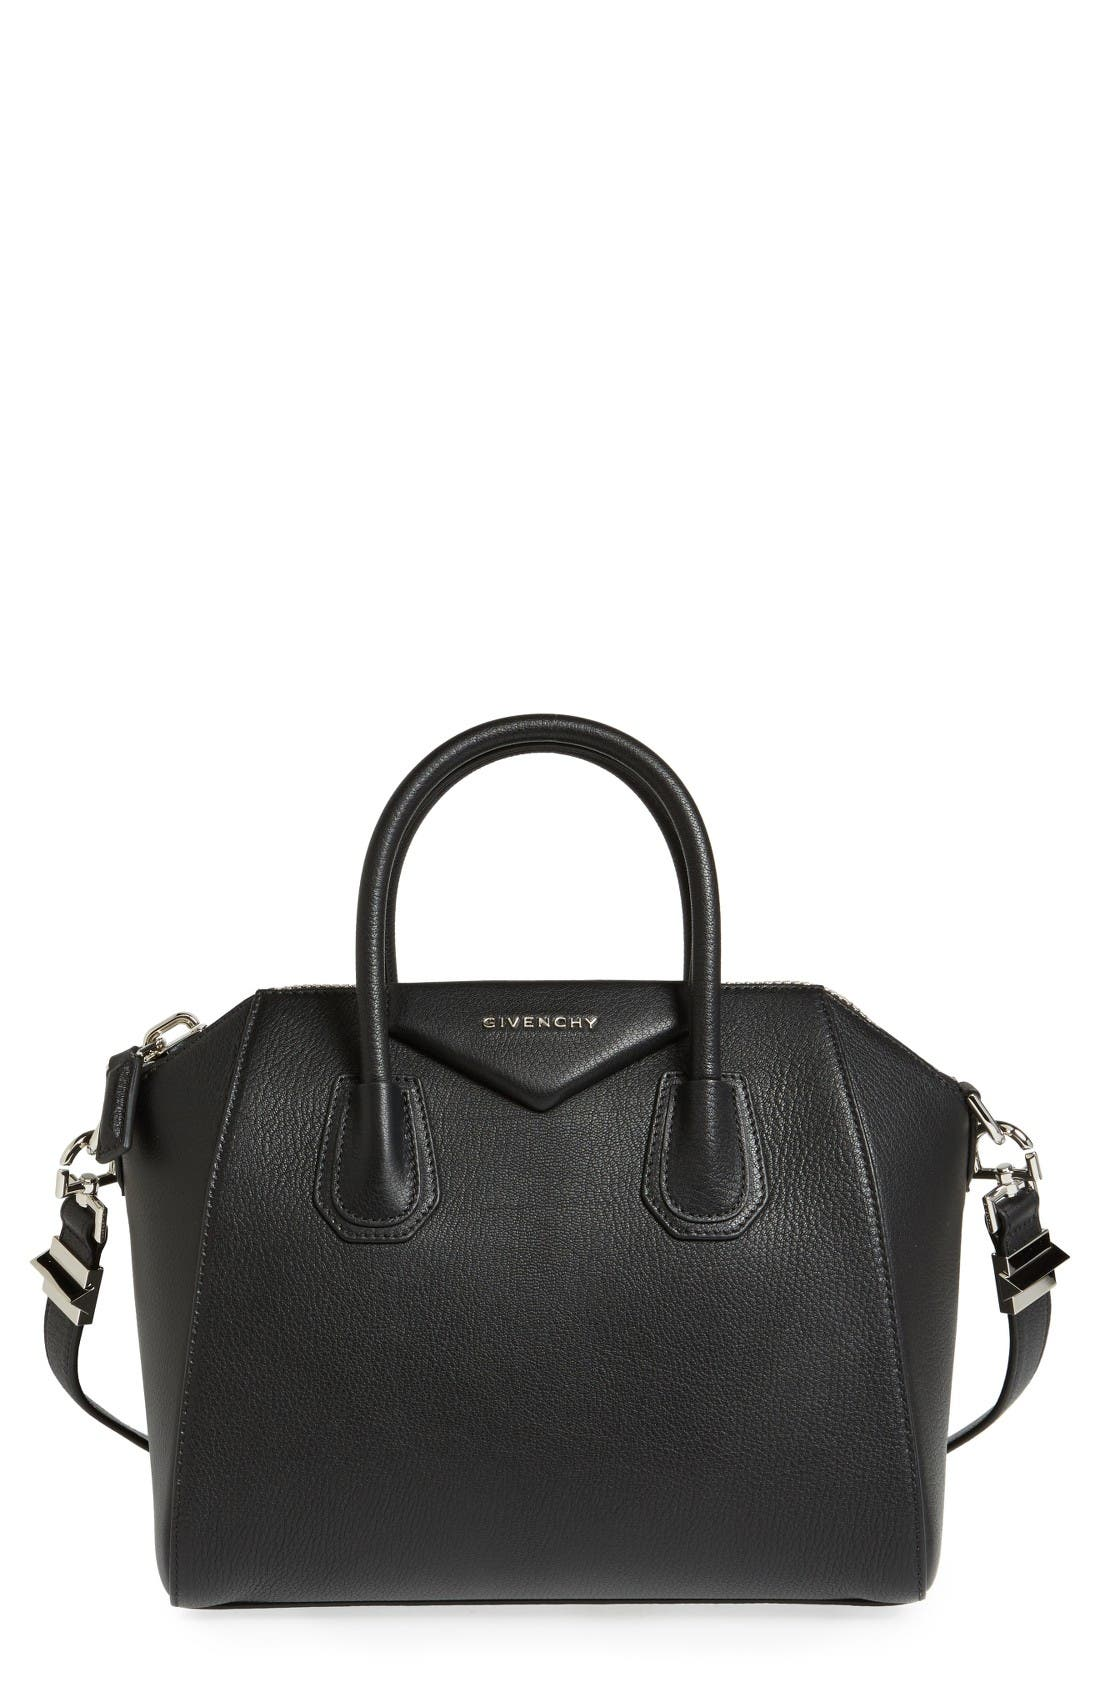 Alternate Image 1 Selected - Givenchy 'Small Antigona' Leather Satchel